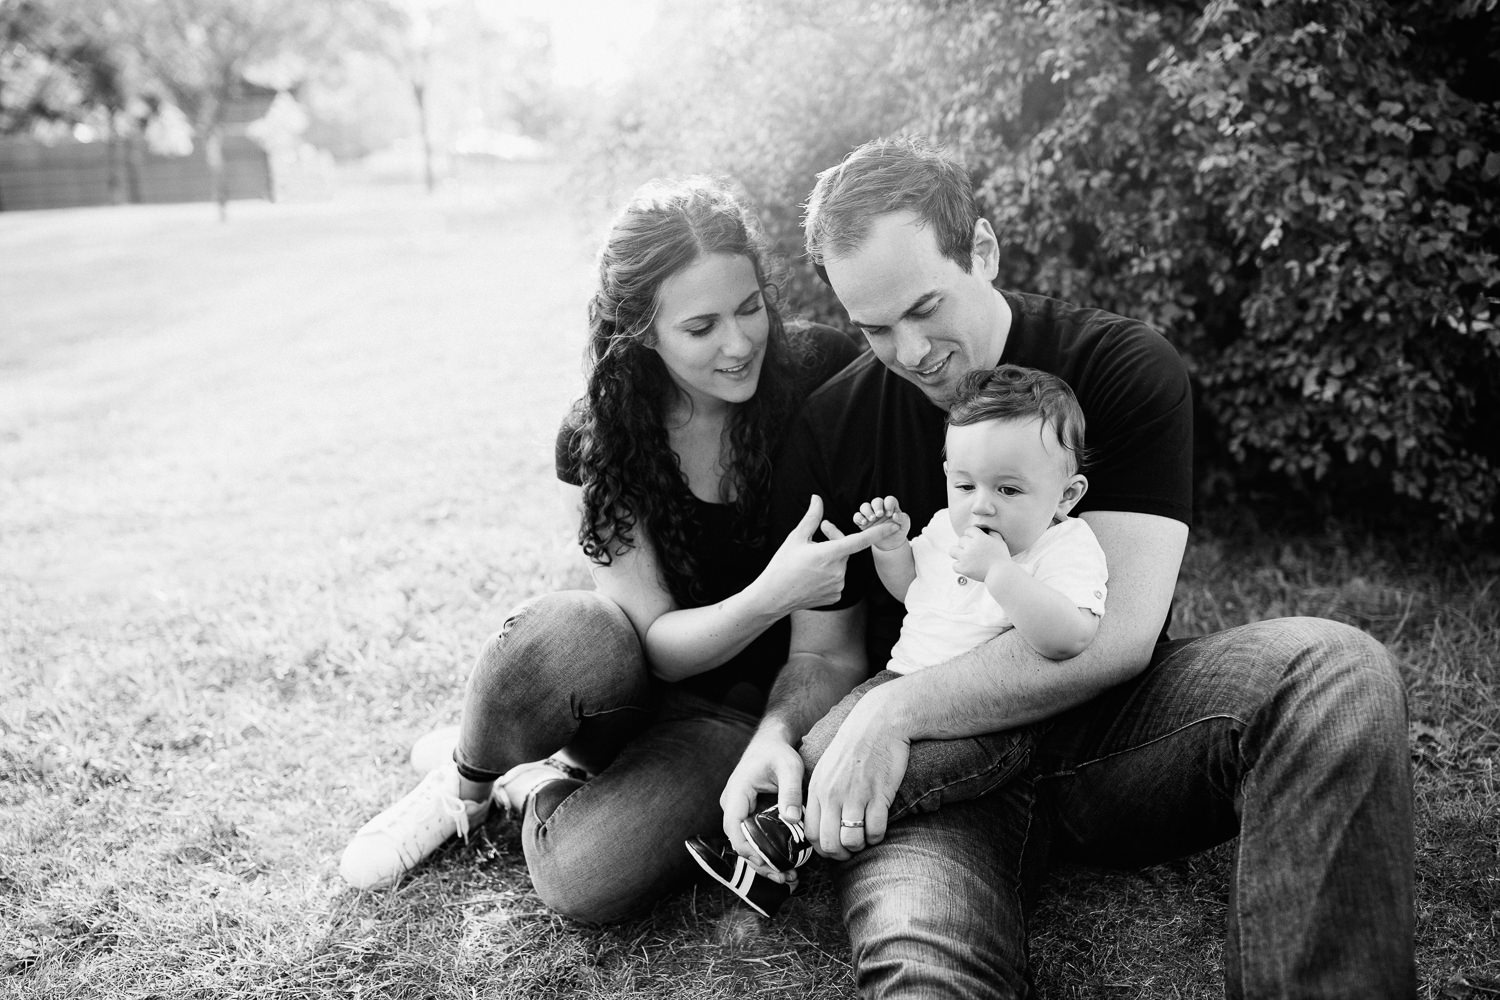 family of 3 sitting on ground in park, 9 month old baby boy with dark hair sitting in dad's lap, mom snuggled next to them holding son's hand - Barrie Lifestyle Photography